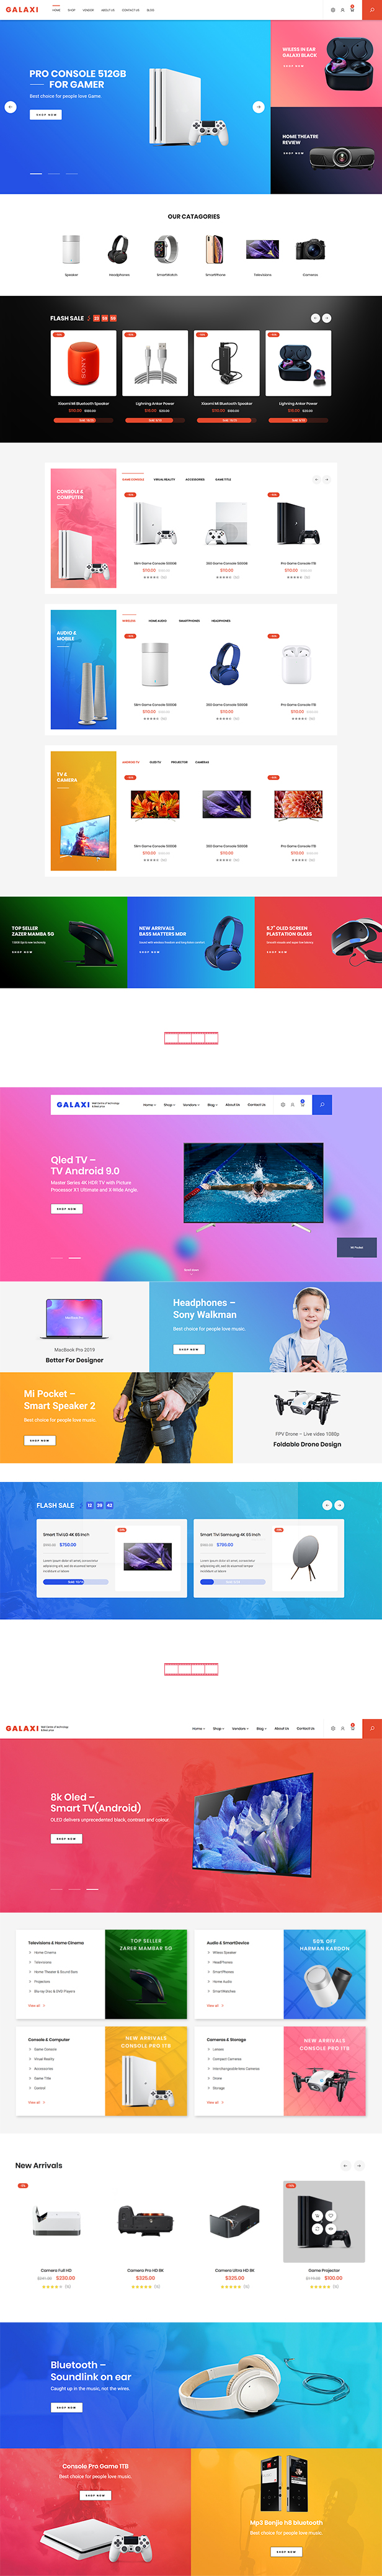 Galaxi - Tech WooCommerce WordPress Theme - 4